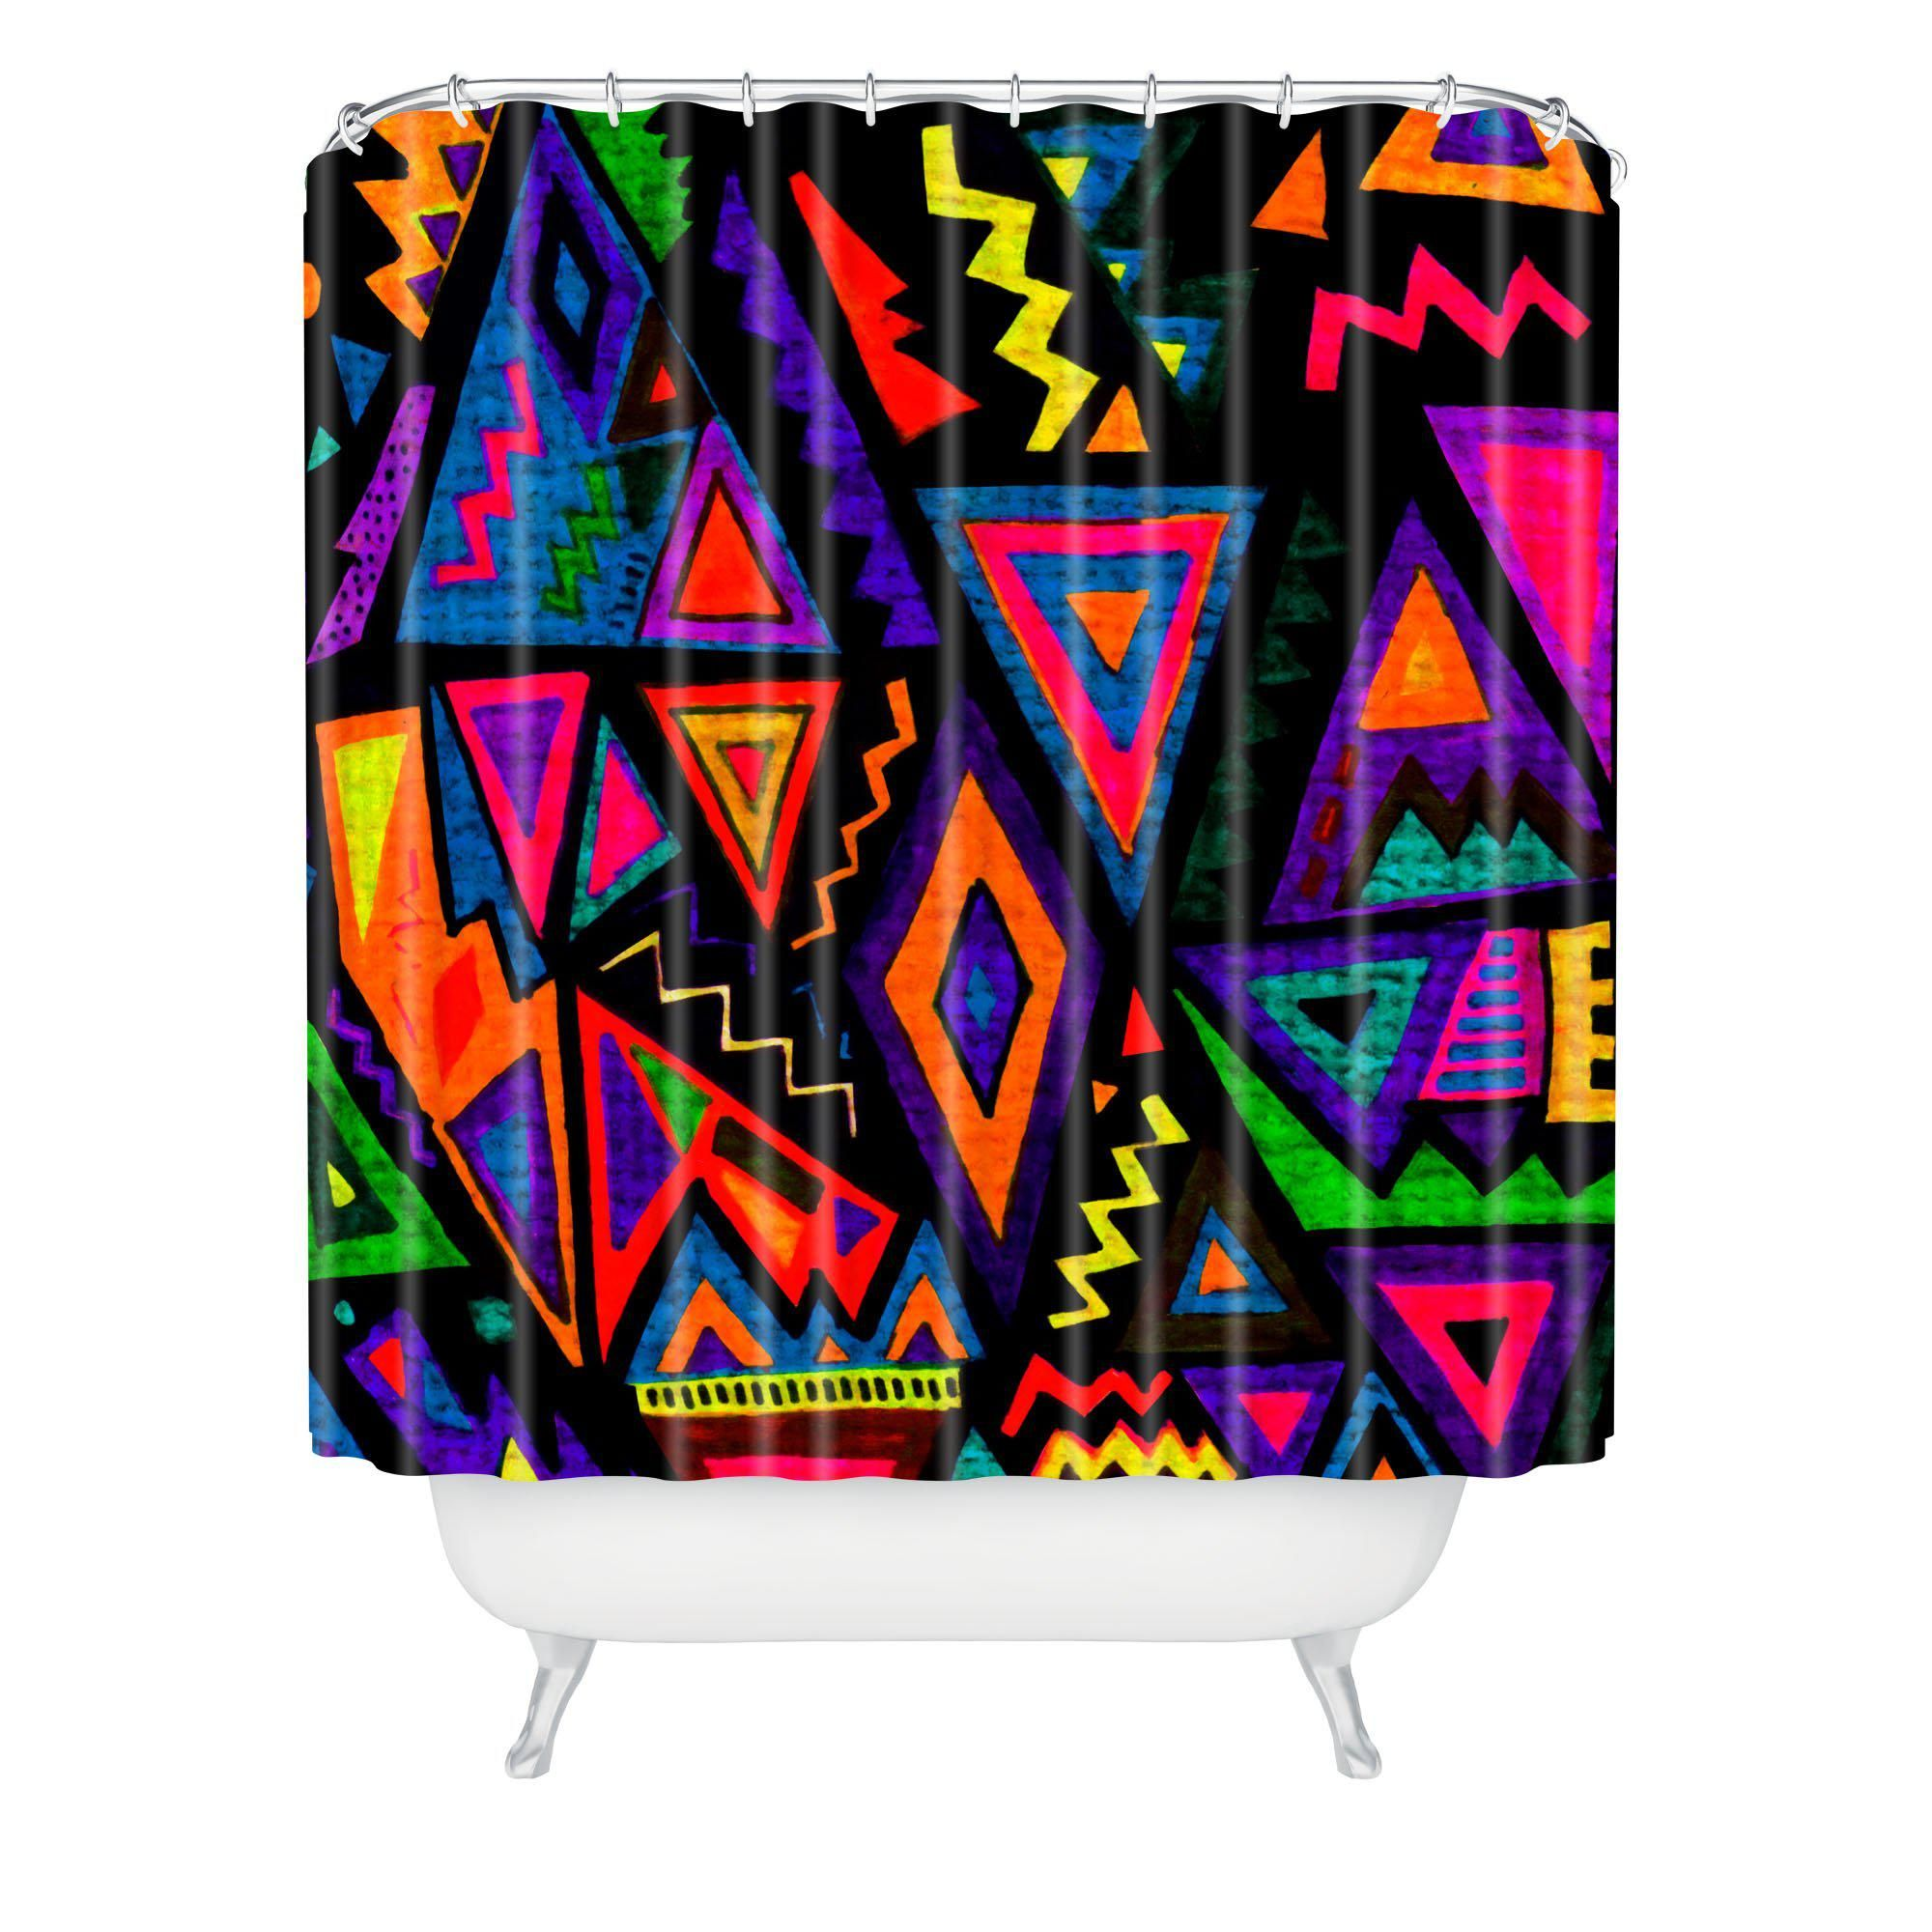 Kris Tate Folklore Shower Curtain From Deny Designs Showercurtain Triangle Bathroom